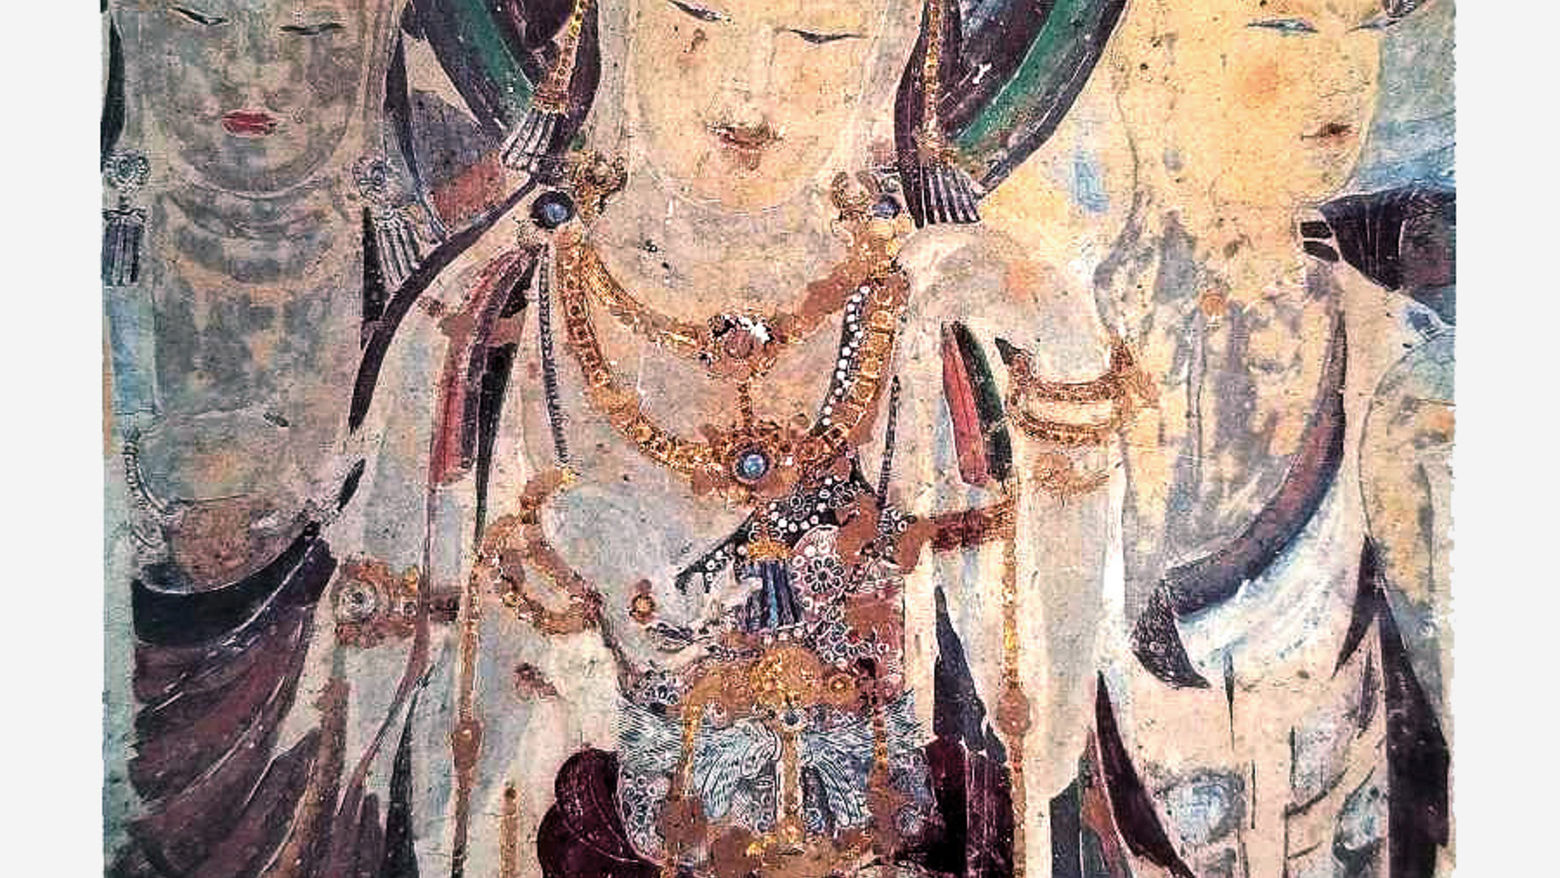 Boddhisattva from cave 57 at Dunhuang, China